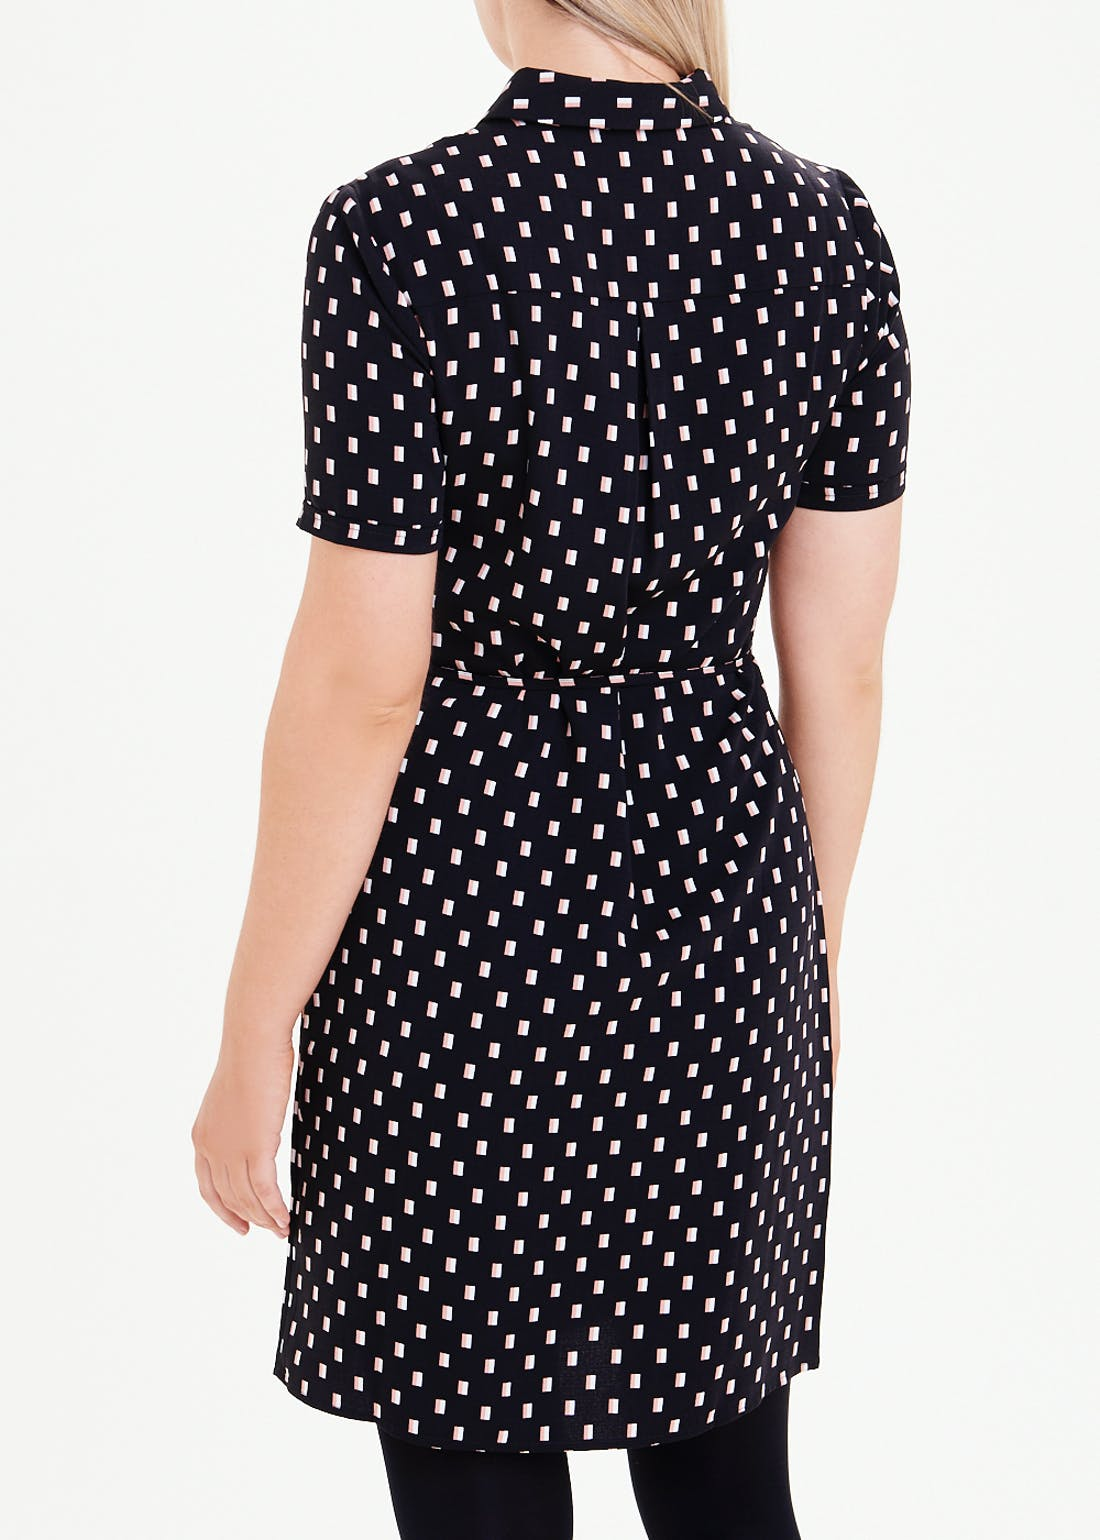 Black Short Sleeve Printed Shirt Dress